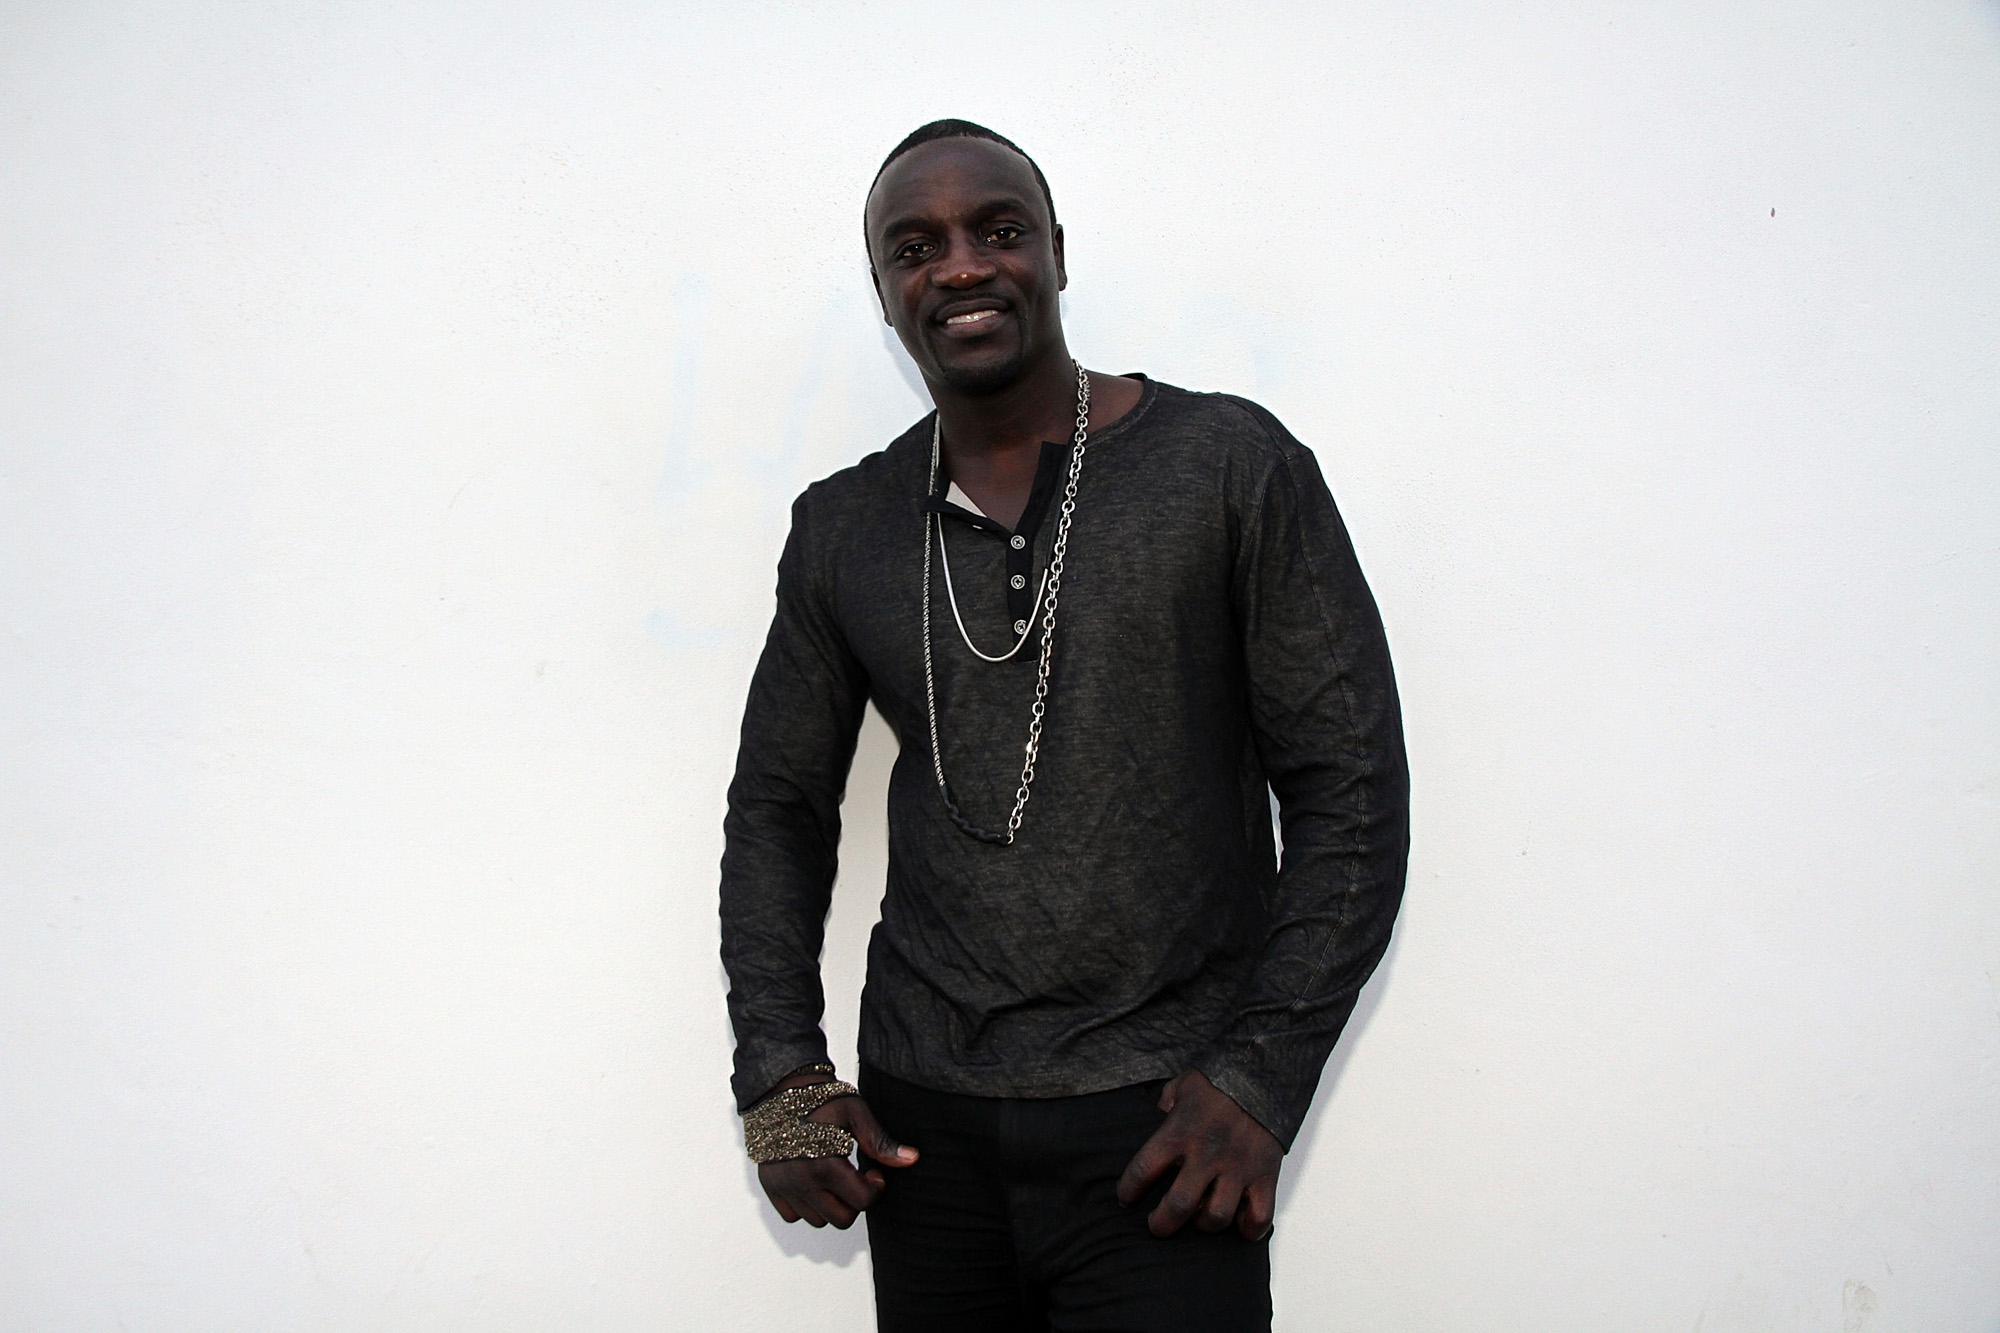 Zion feat. Akon – The Way She Moves (Video)